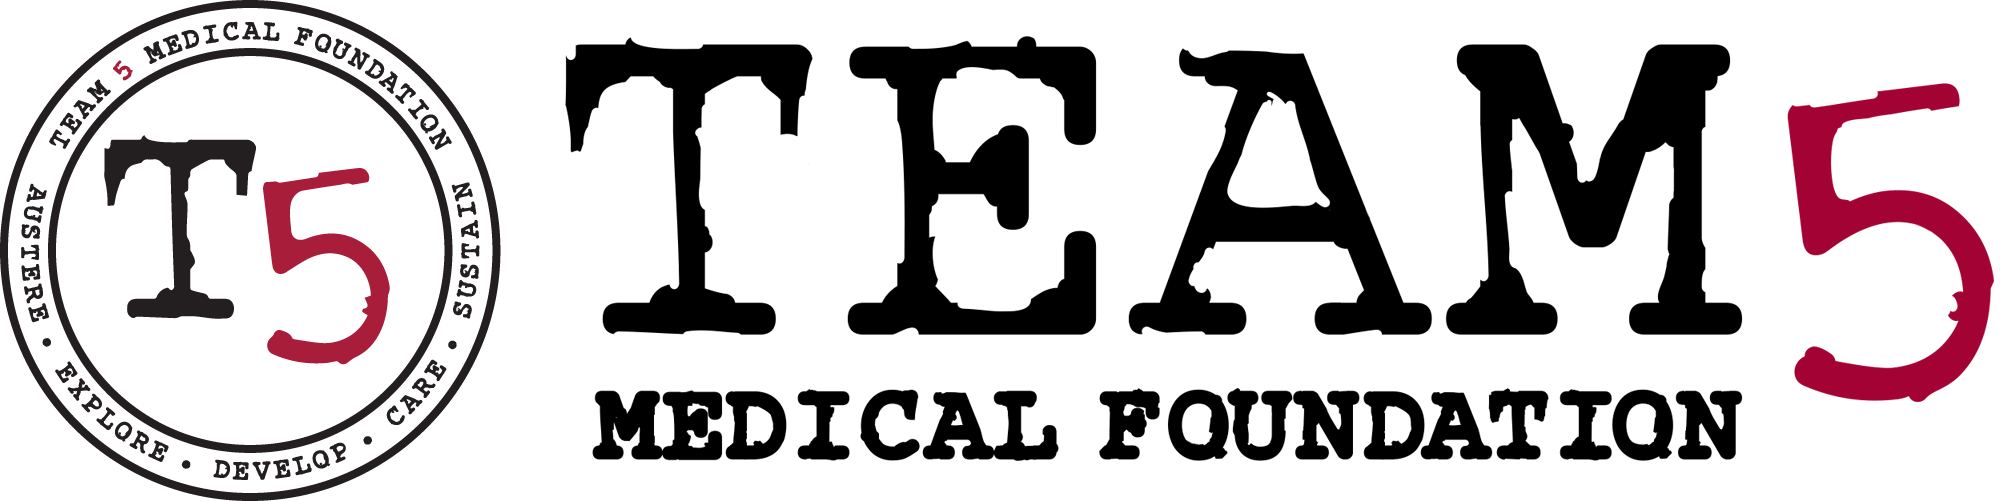 Medical - Team-5 is a non-profit SOFMED veteran foundation that provides medical care in the most overlooked remote areas of the world.